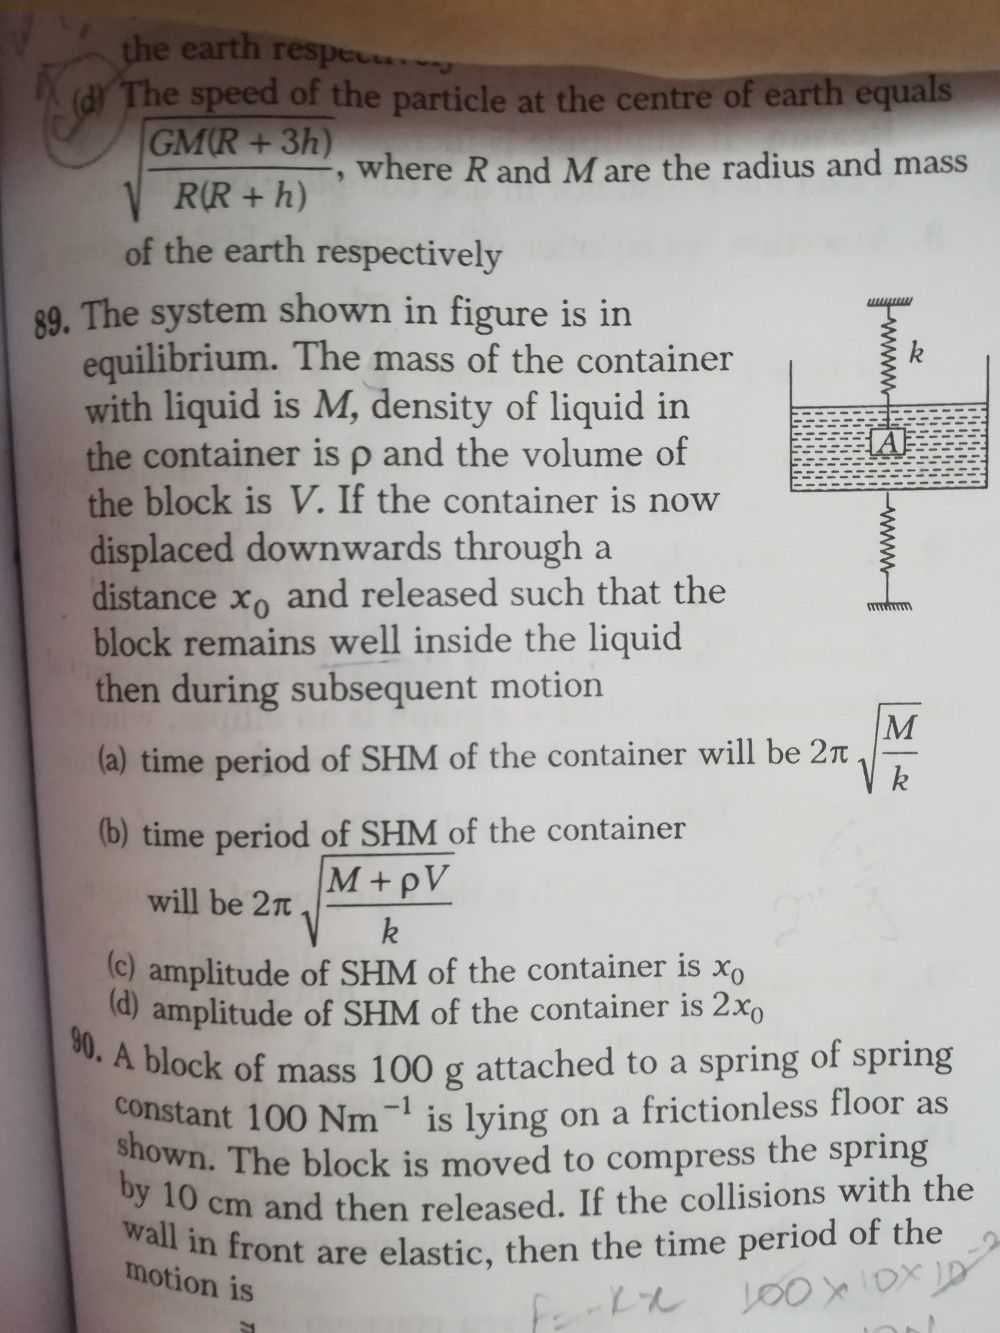 please help can you explain to me what the question is asking